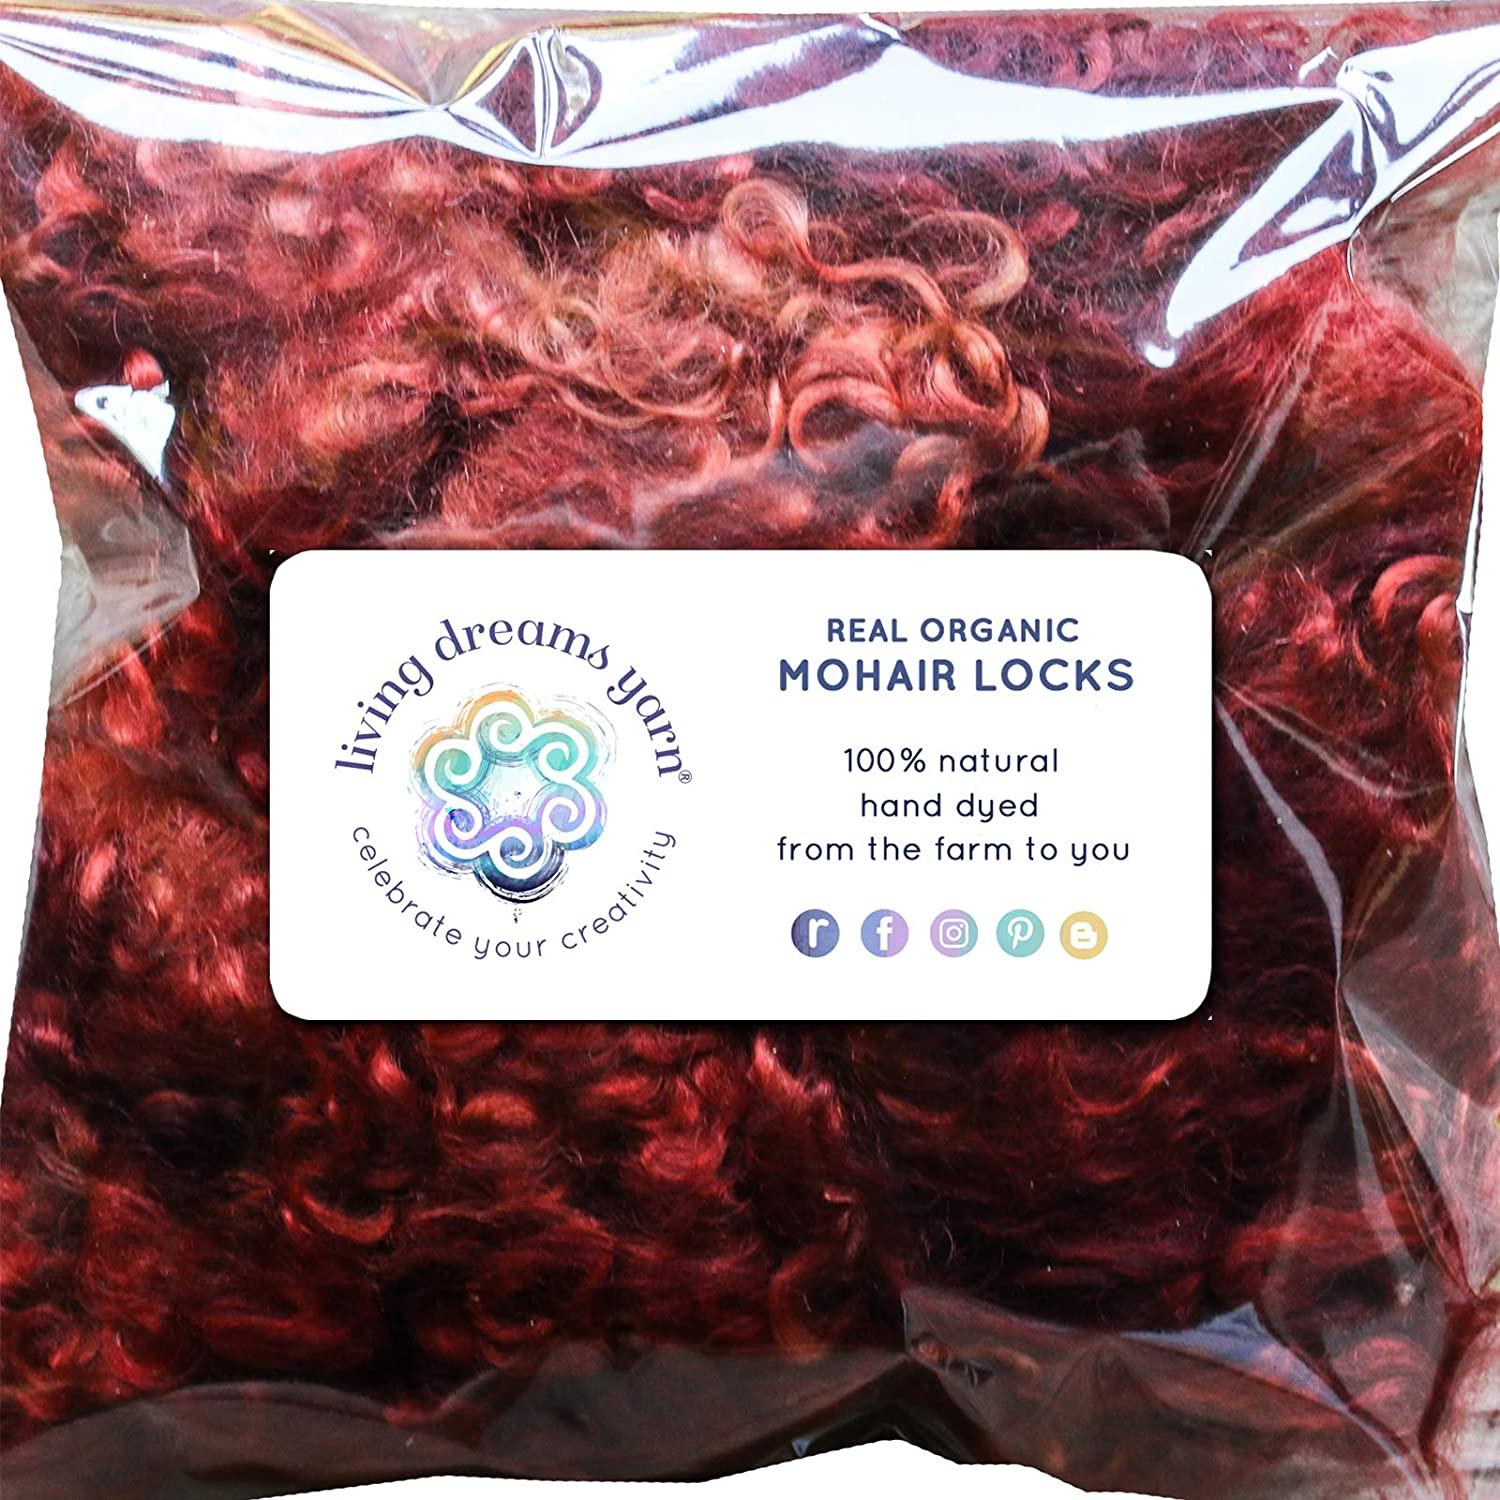 Real Mohair Wool Locks, Organic Hand Dyed Fiber for Felting, Blending, Spinning, Knitting, Doll Hair and Embellishments. 1 Ounce Henna Living Dreams Yarn